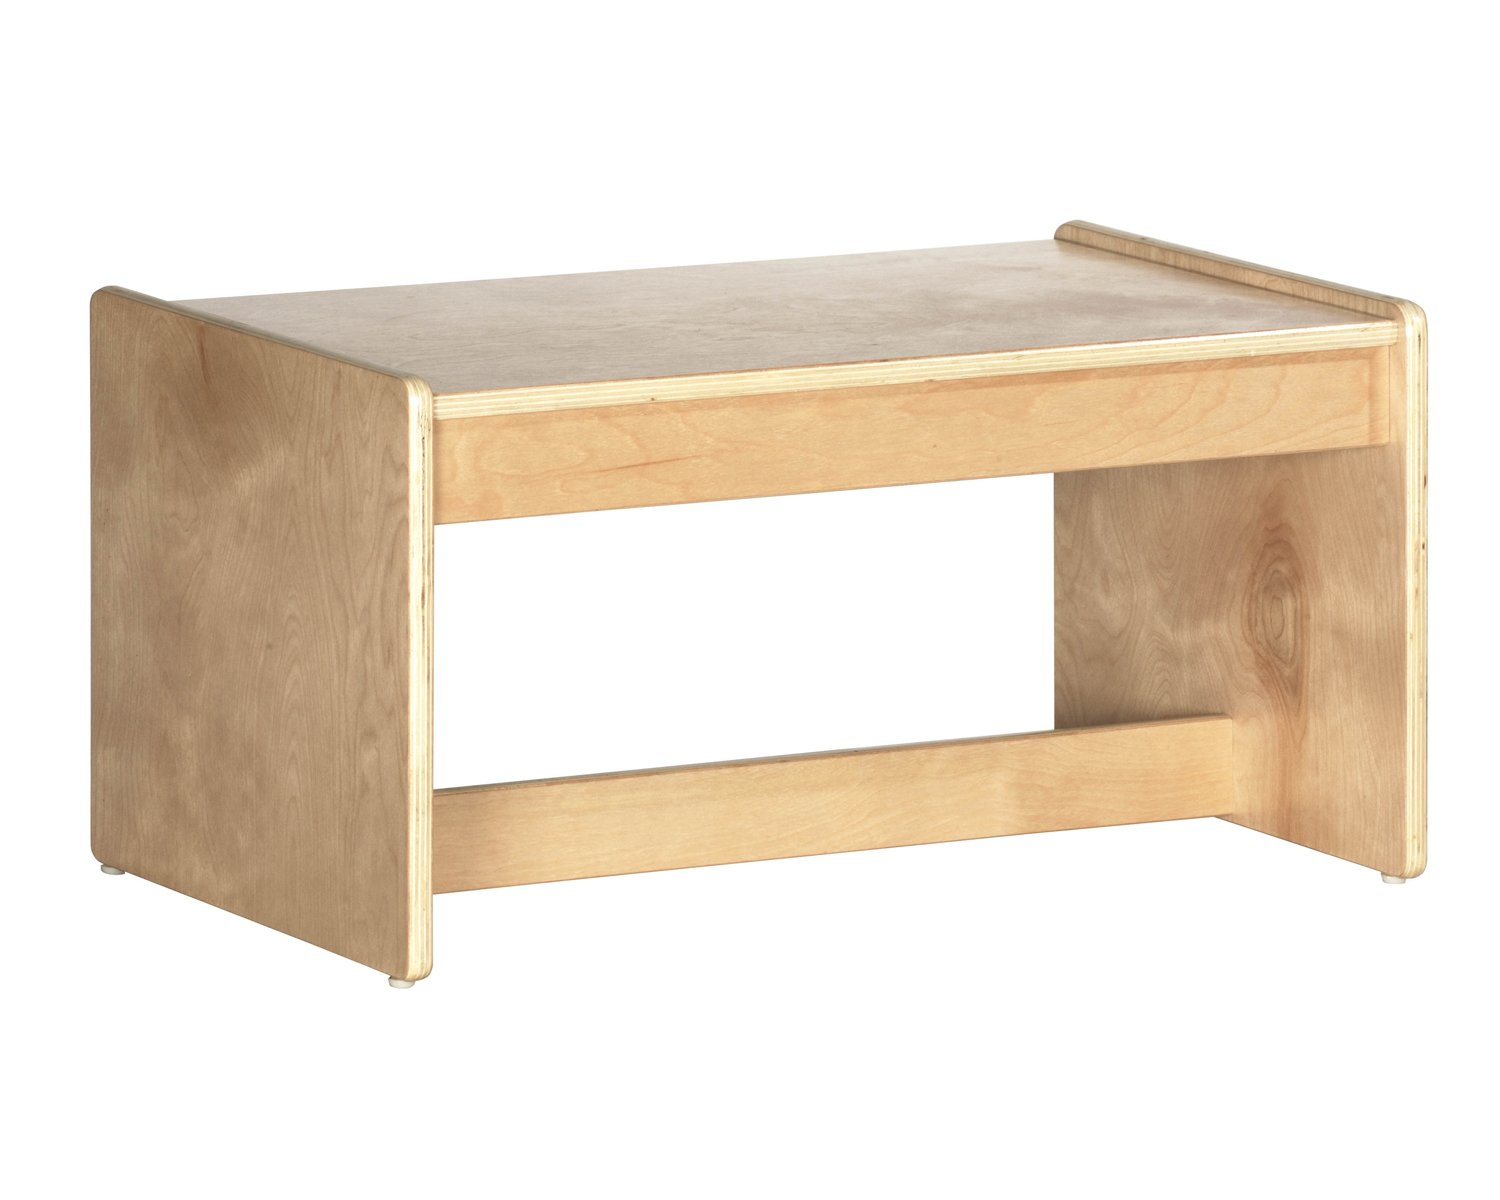 Offex Birch Hardwood Childrens Living Room Coffee Table, Natural